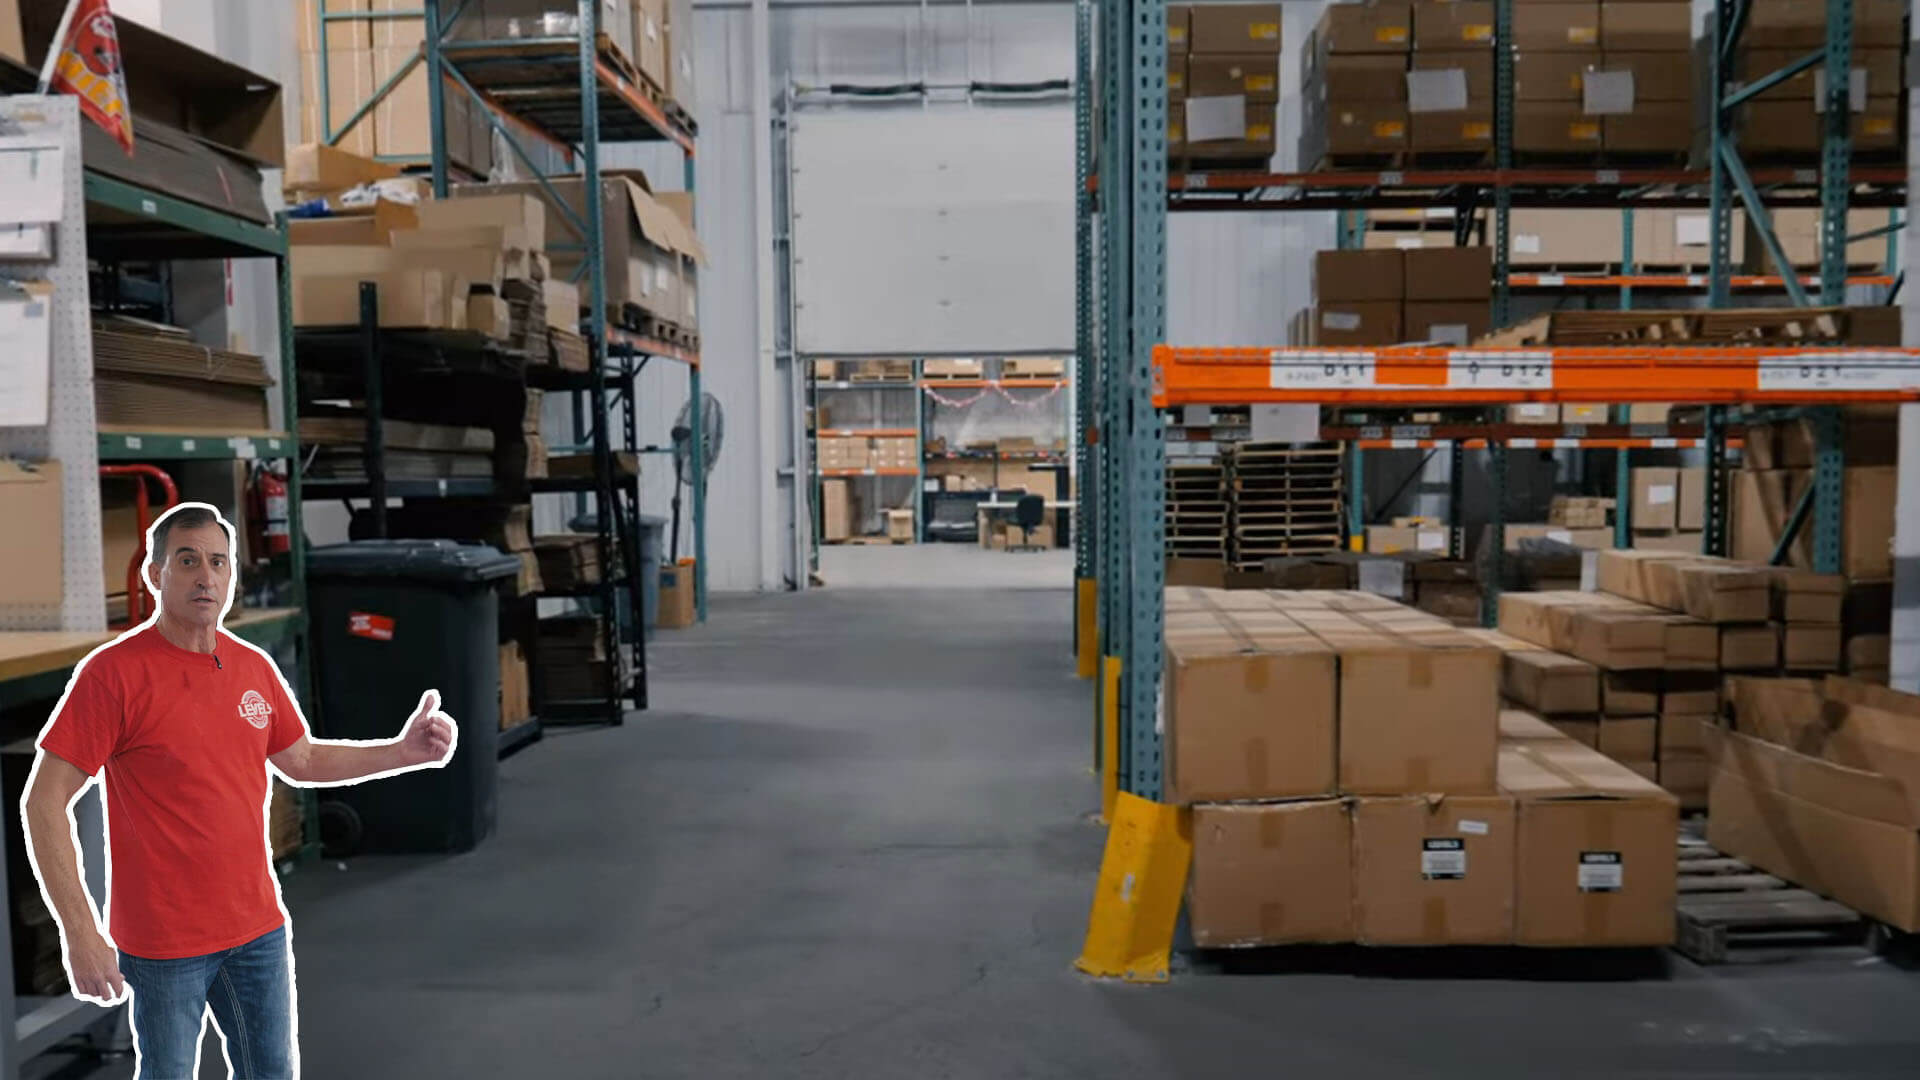 LEVEL5 Warehouse Walkthrough